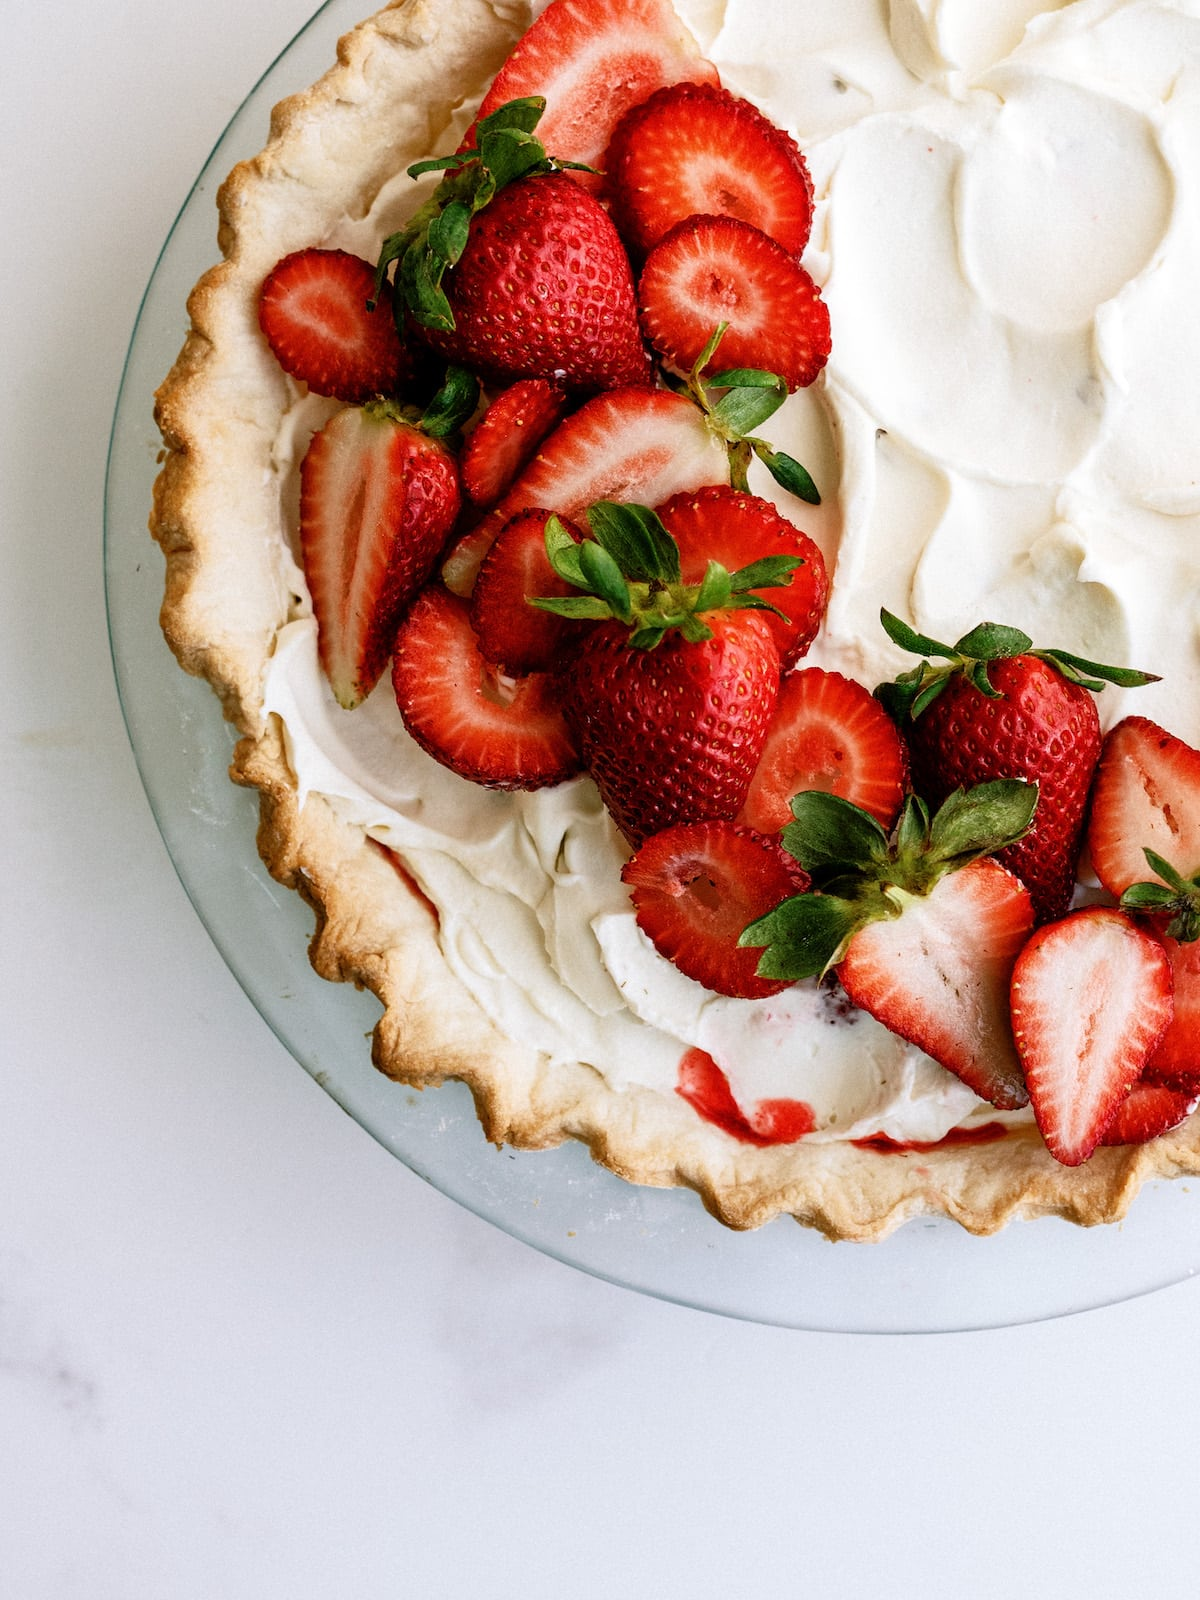 strawberry pie with jello and whipped cream on top